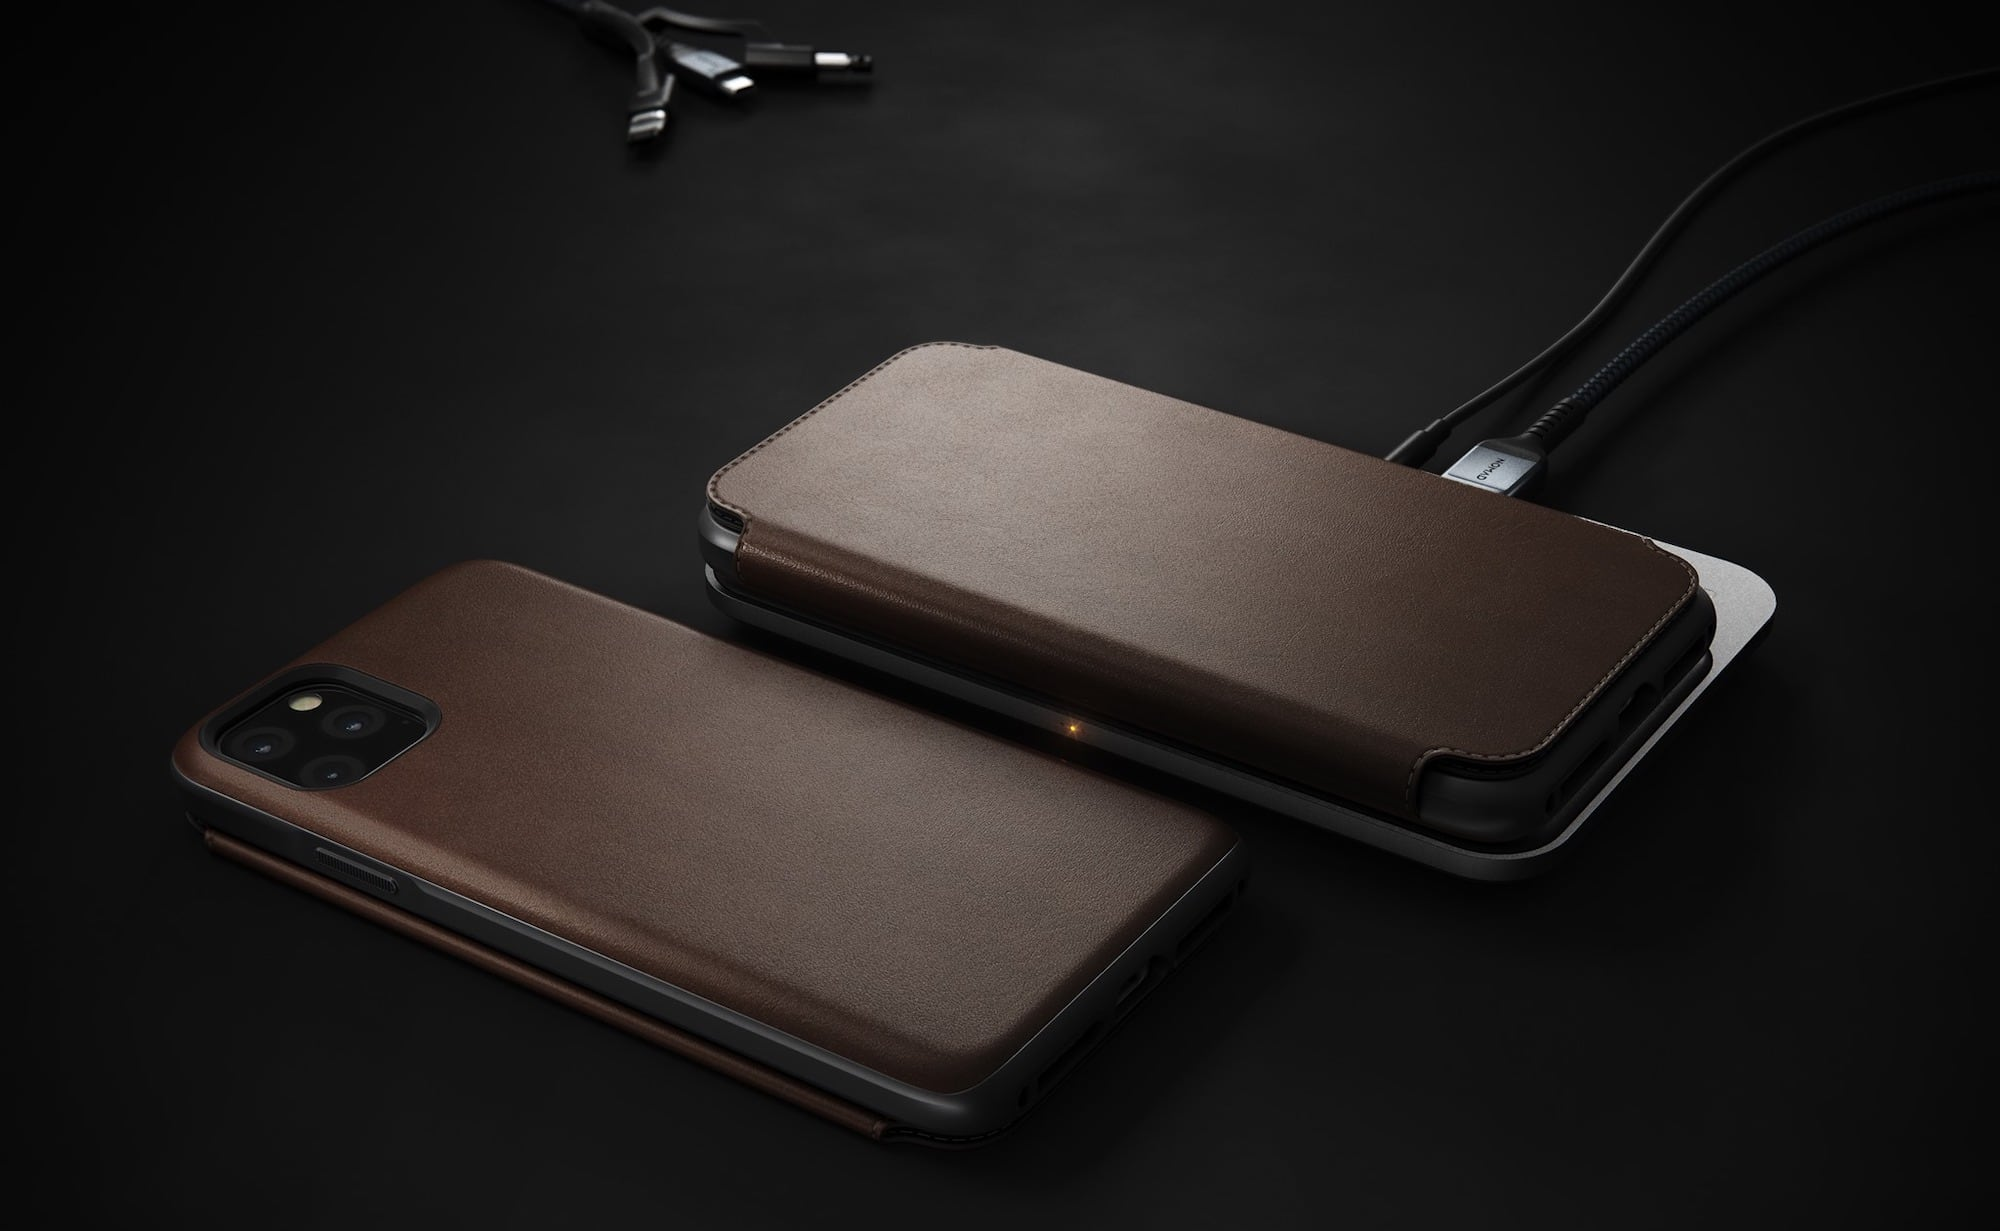 Nomad Rugged Folio Horween Leather iPhone 11 Pro Max Case offers all-angle drop protection